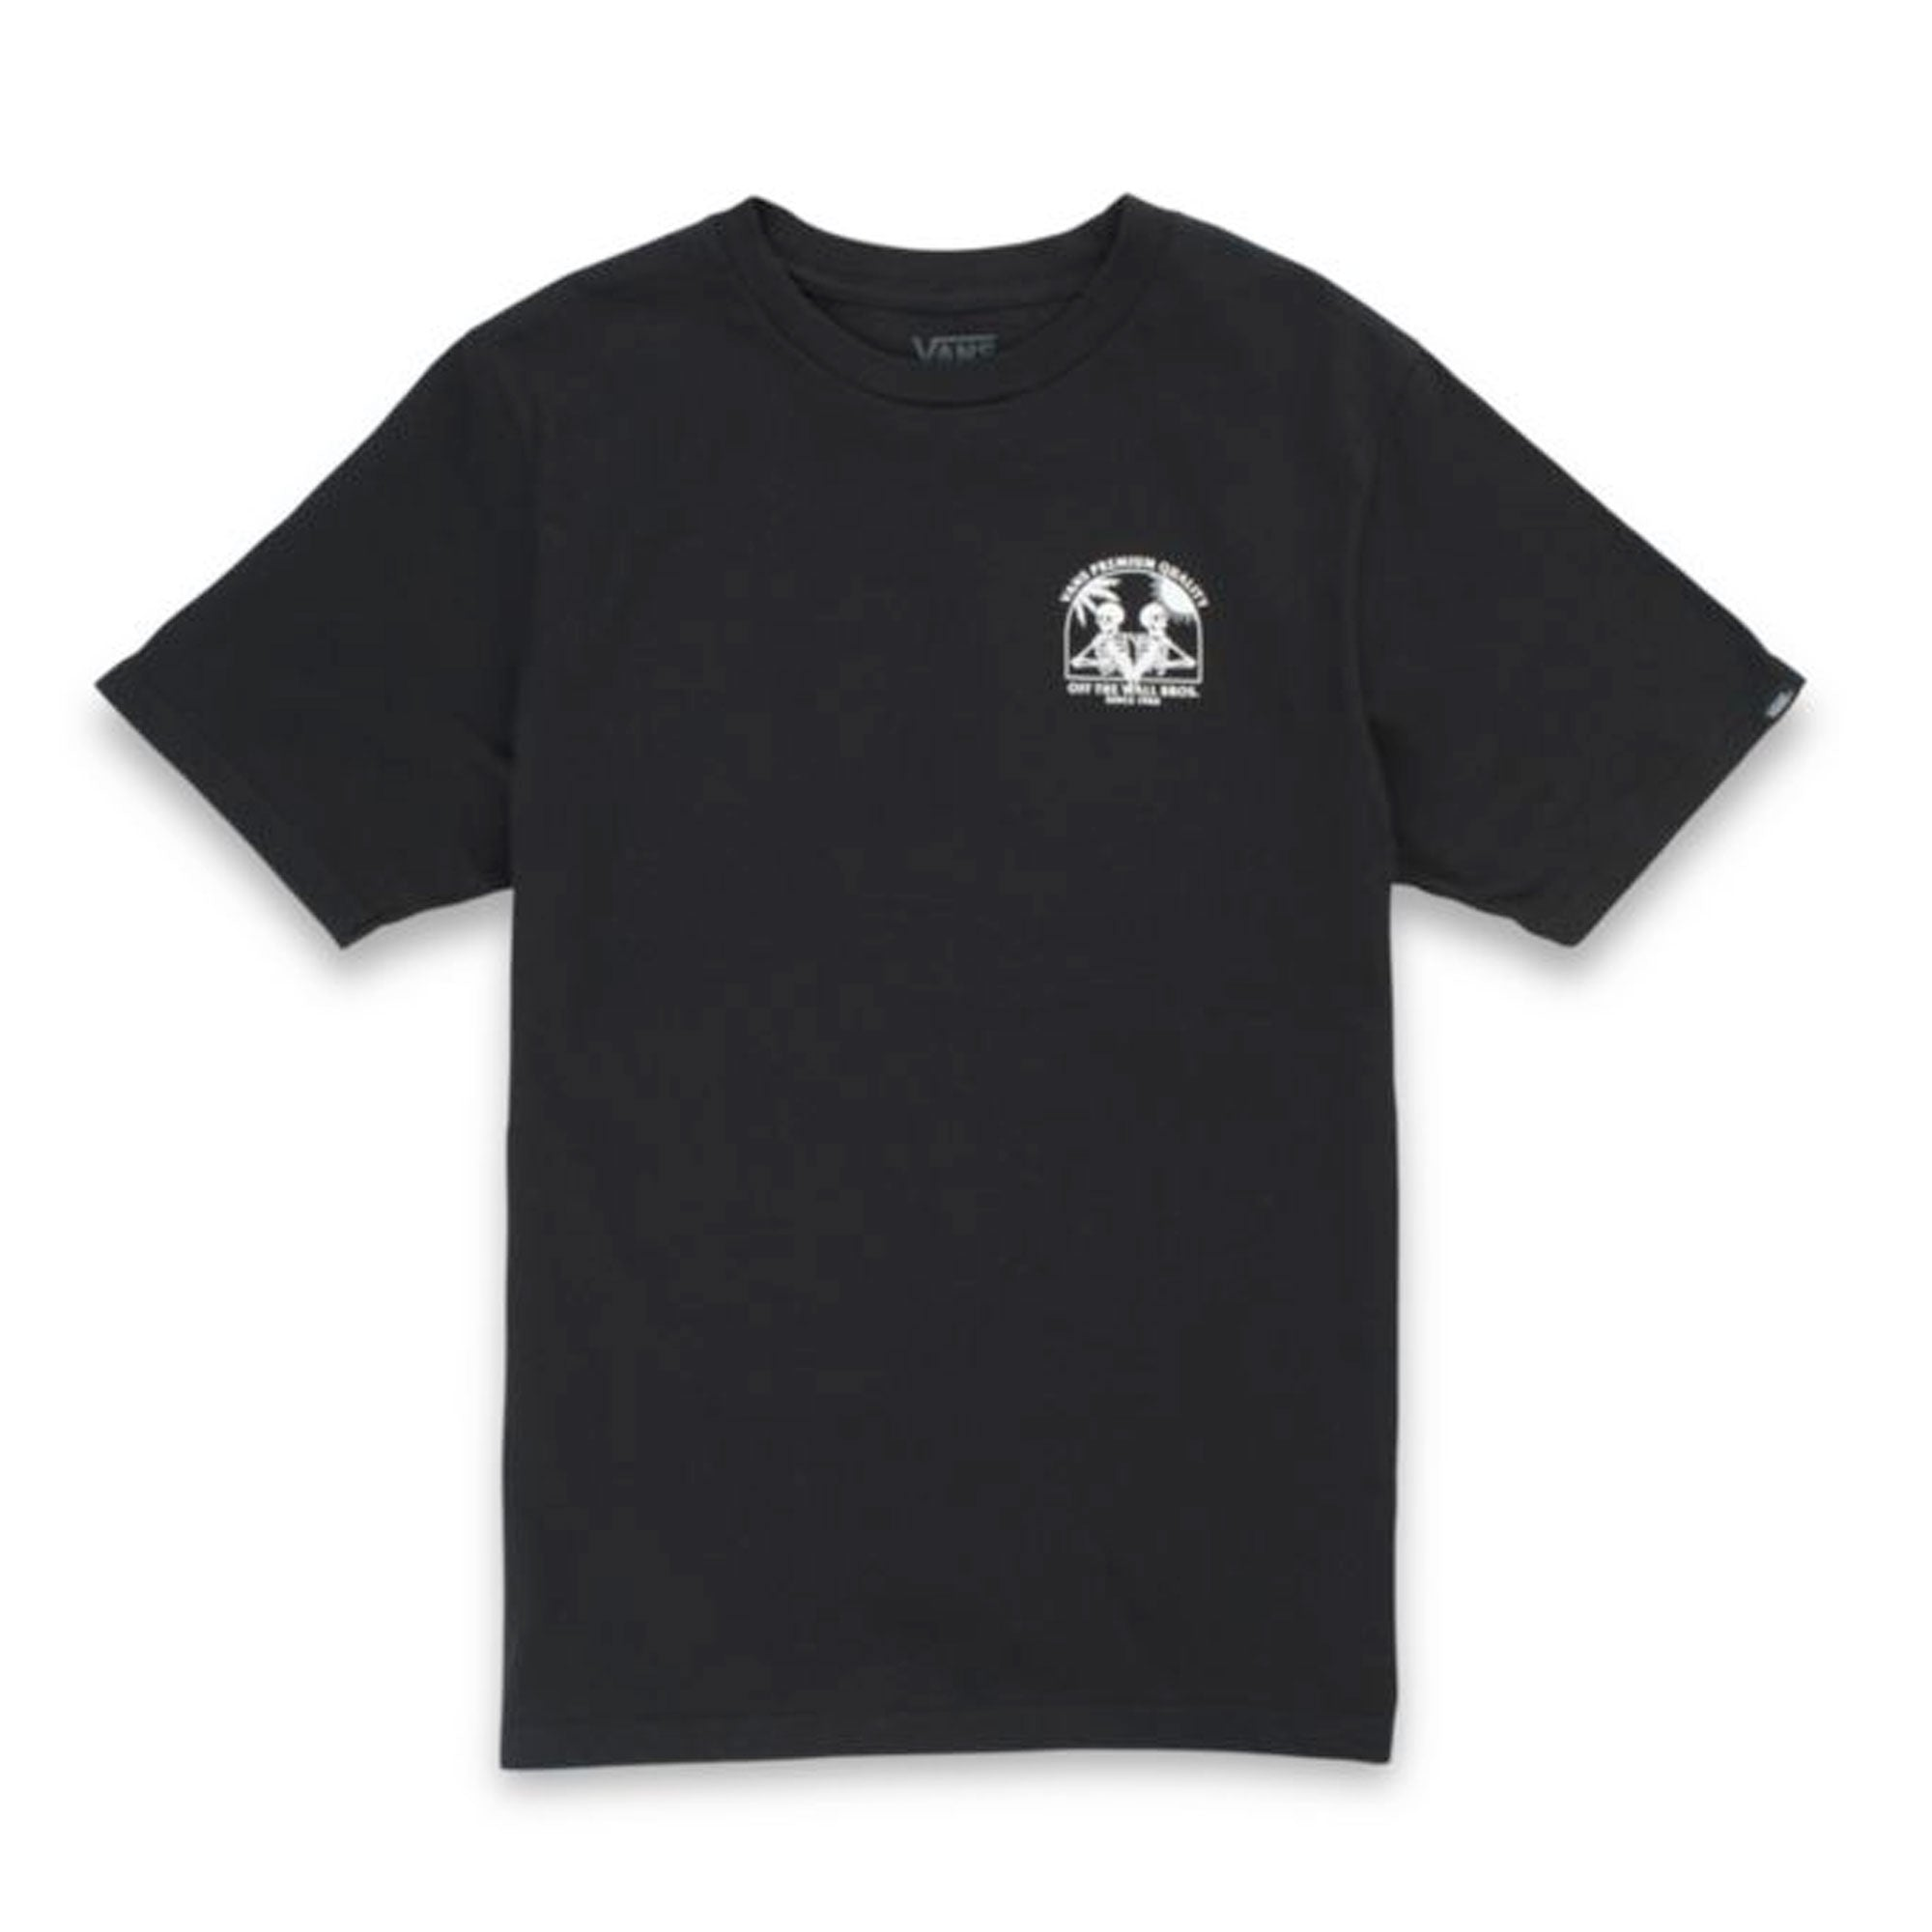 Vans Pizza Bros Boy's S/S T-Shirt